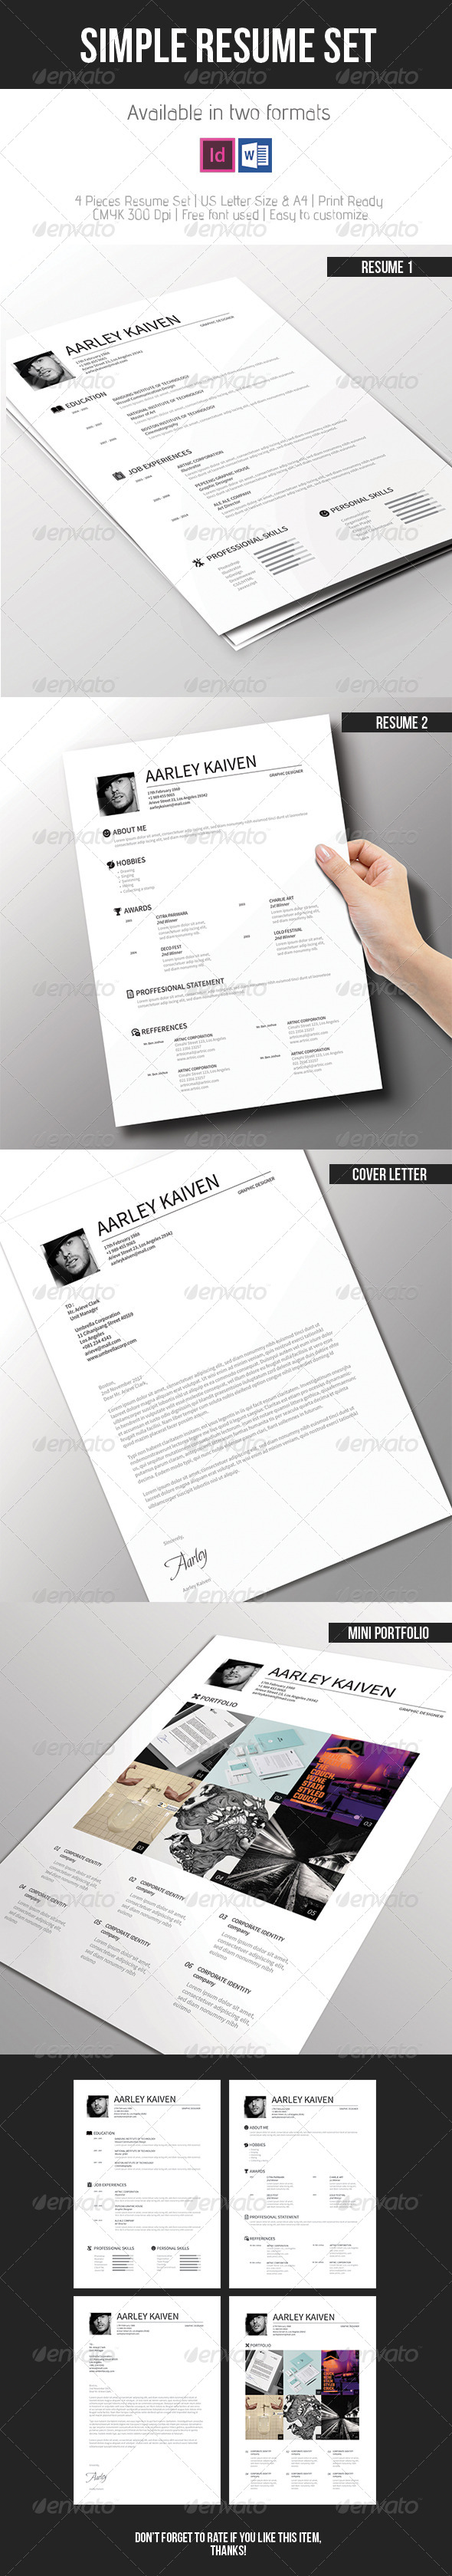 GraphicRiver Simple Resume Set 7618975